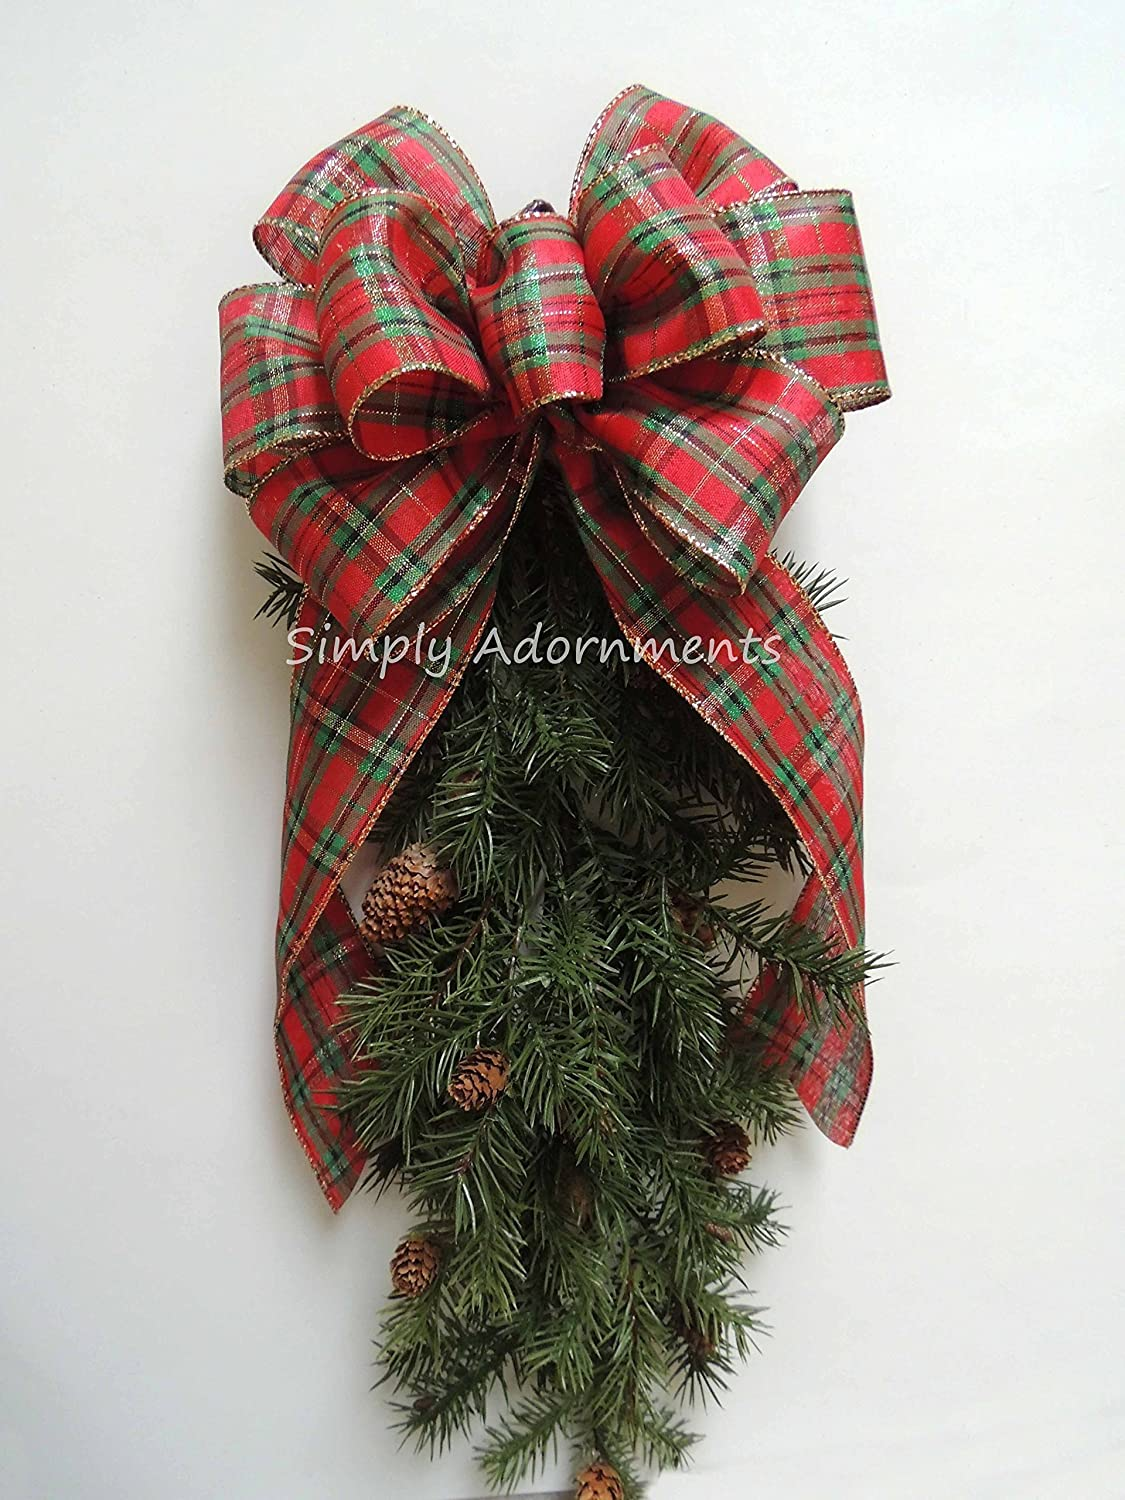 Mettalic Gold Red Green Holiday Plaid Bow Red Scotch Plaid Christmas Wreath Bow Red Green Gold Tartan Monogram Christmas Bow Country Plaid Wedding Bow Chistmas Plaid Topper Bow